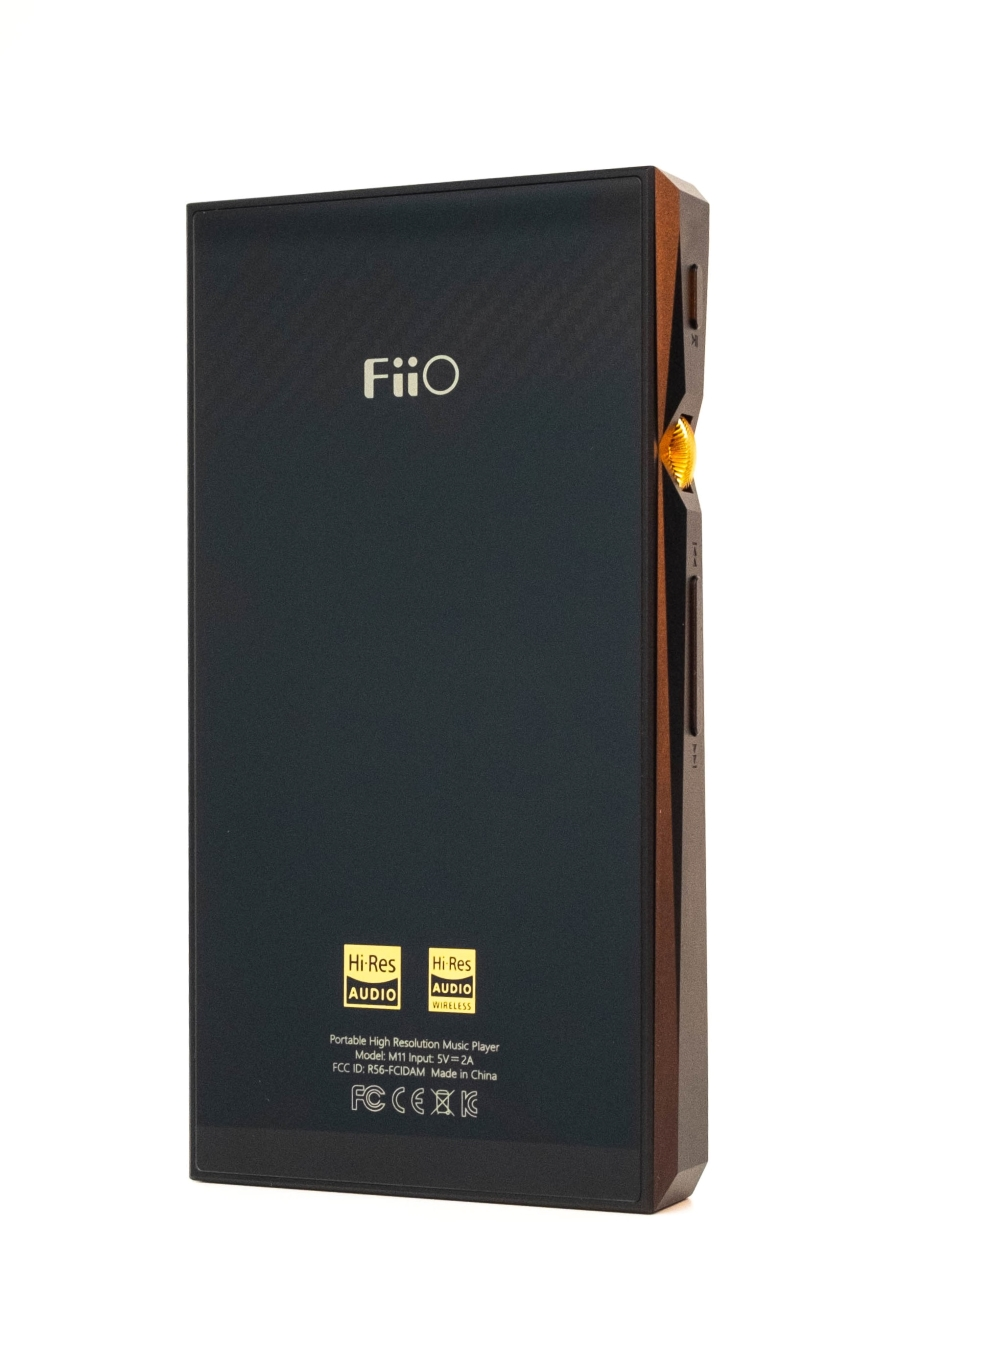 FiiO M11 review - Fastest and Coolest DAP of the industry